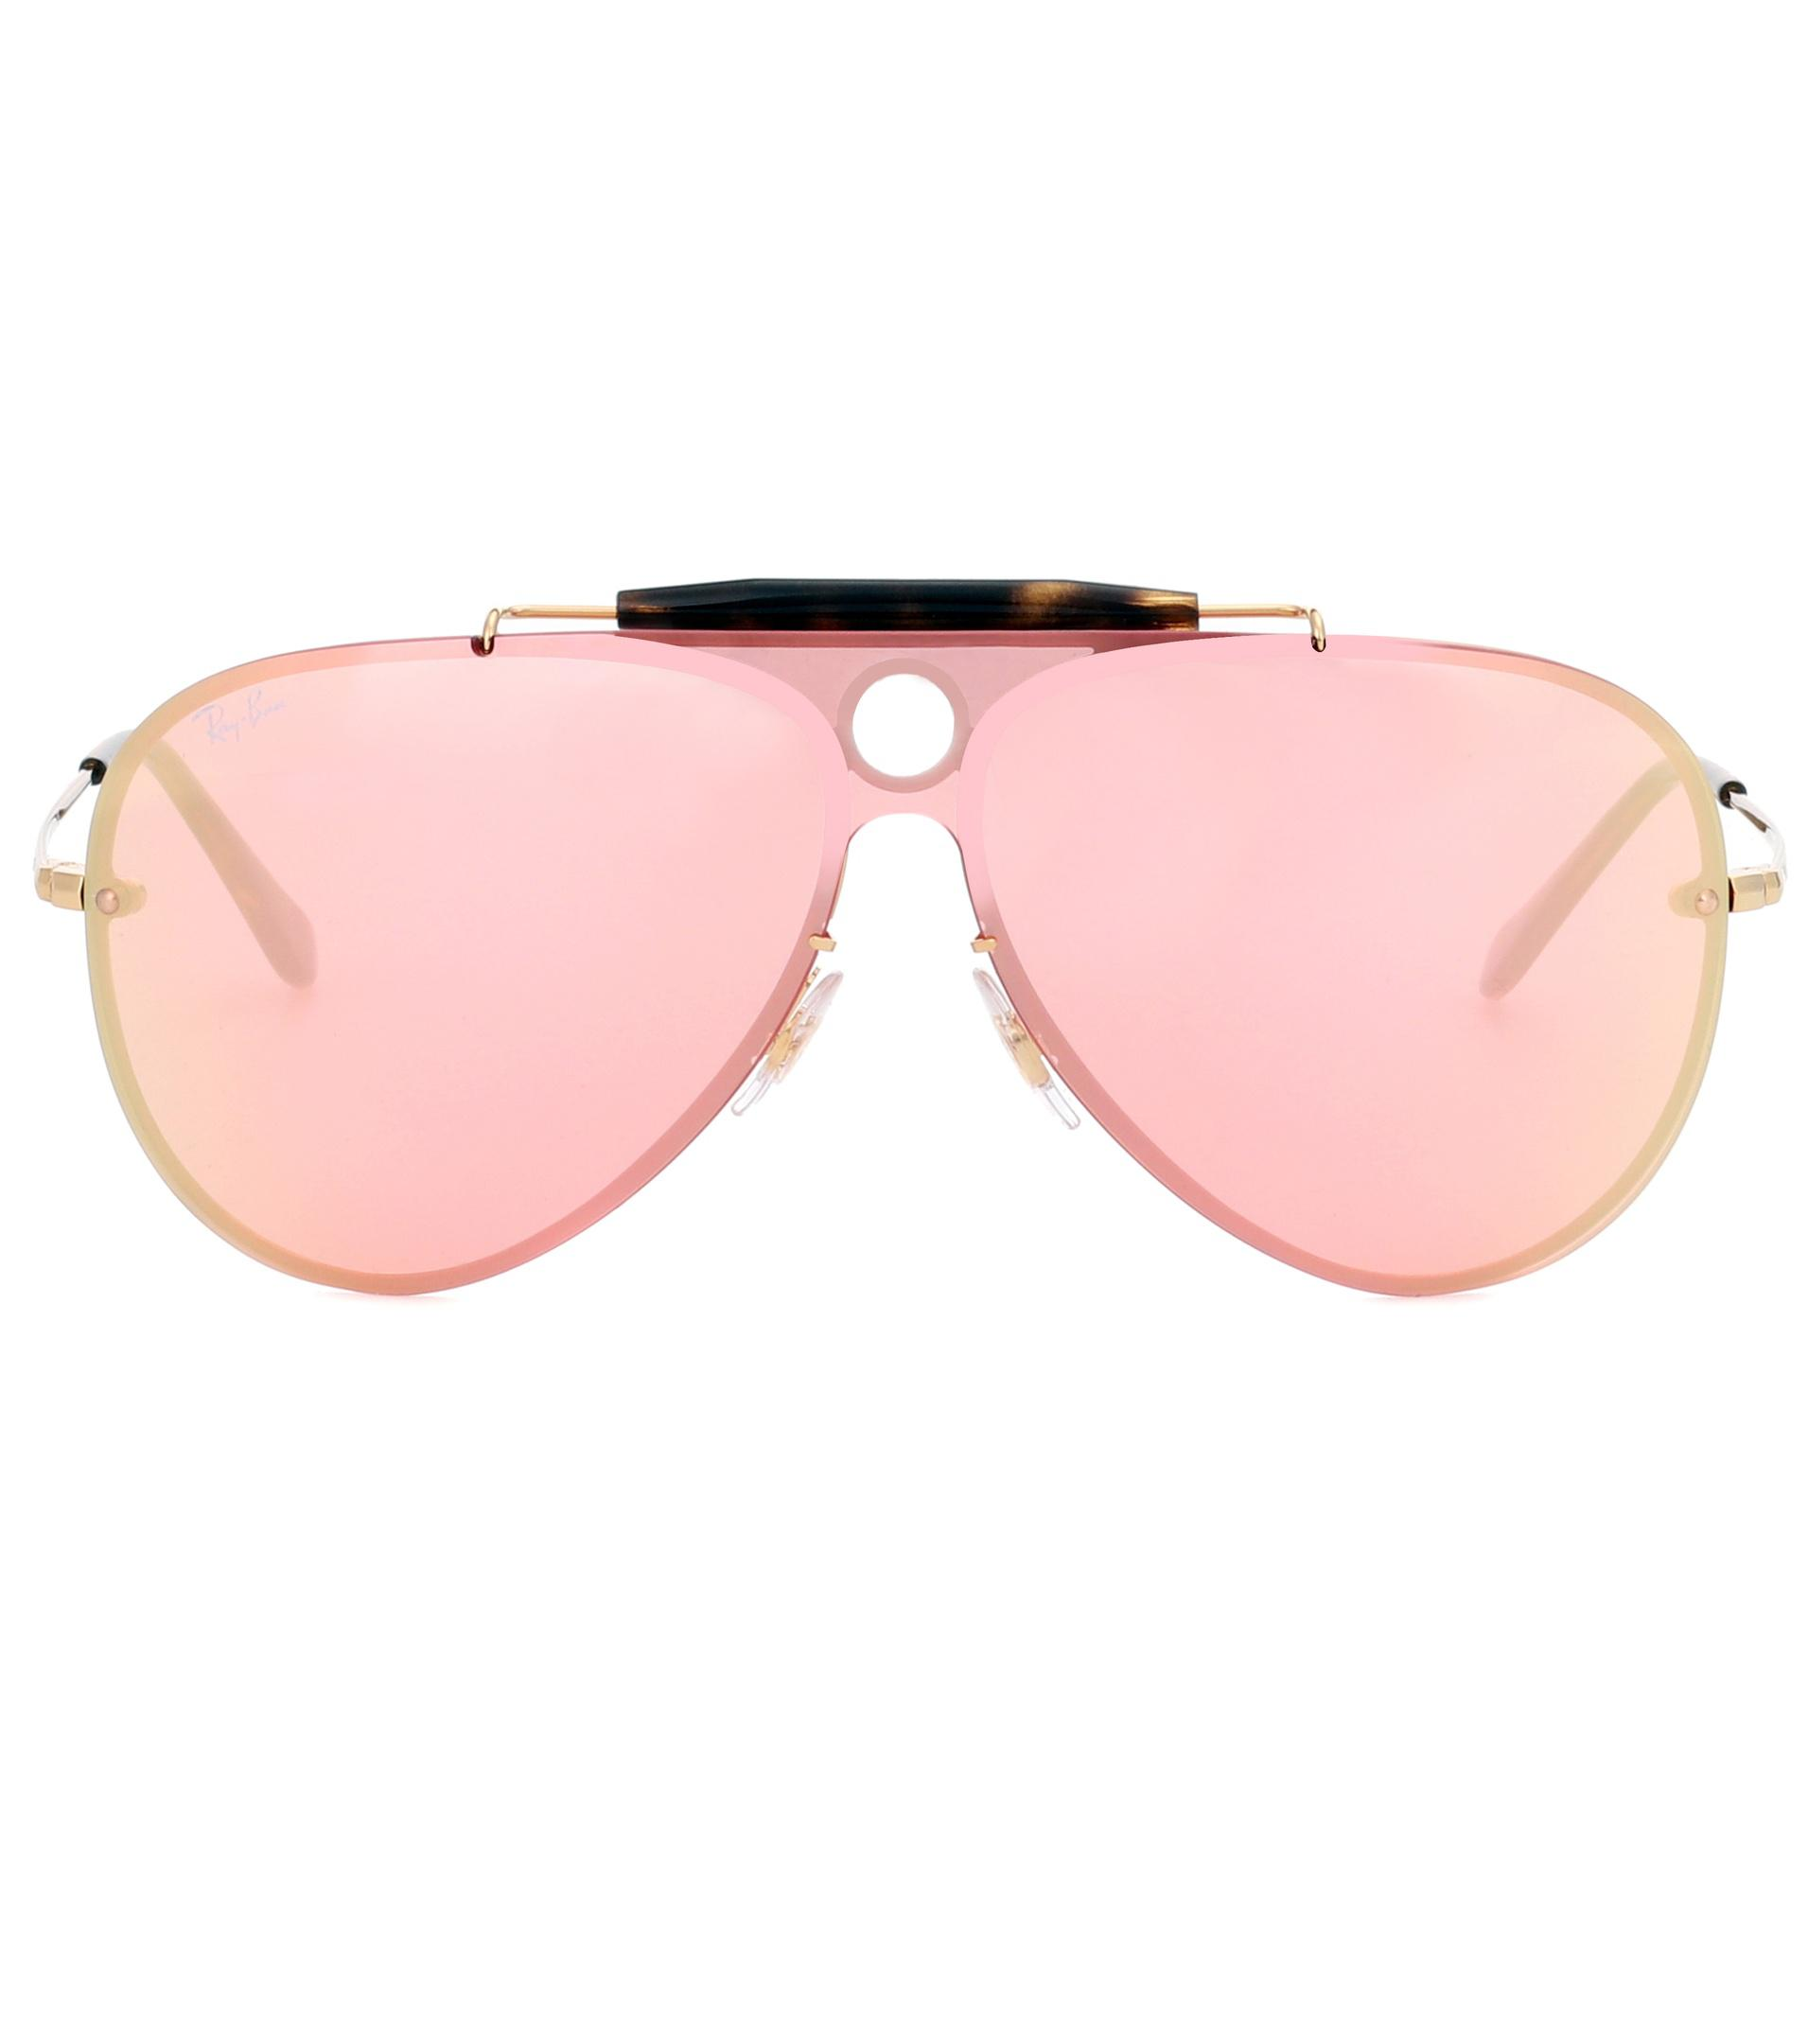 4bc057aaf1f44 Lyst - Ray-Ban Rb3581 Blaze Shooter Sunglasses in Pink